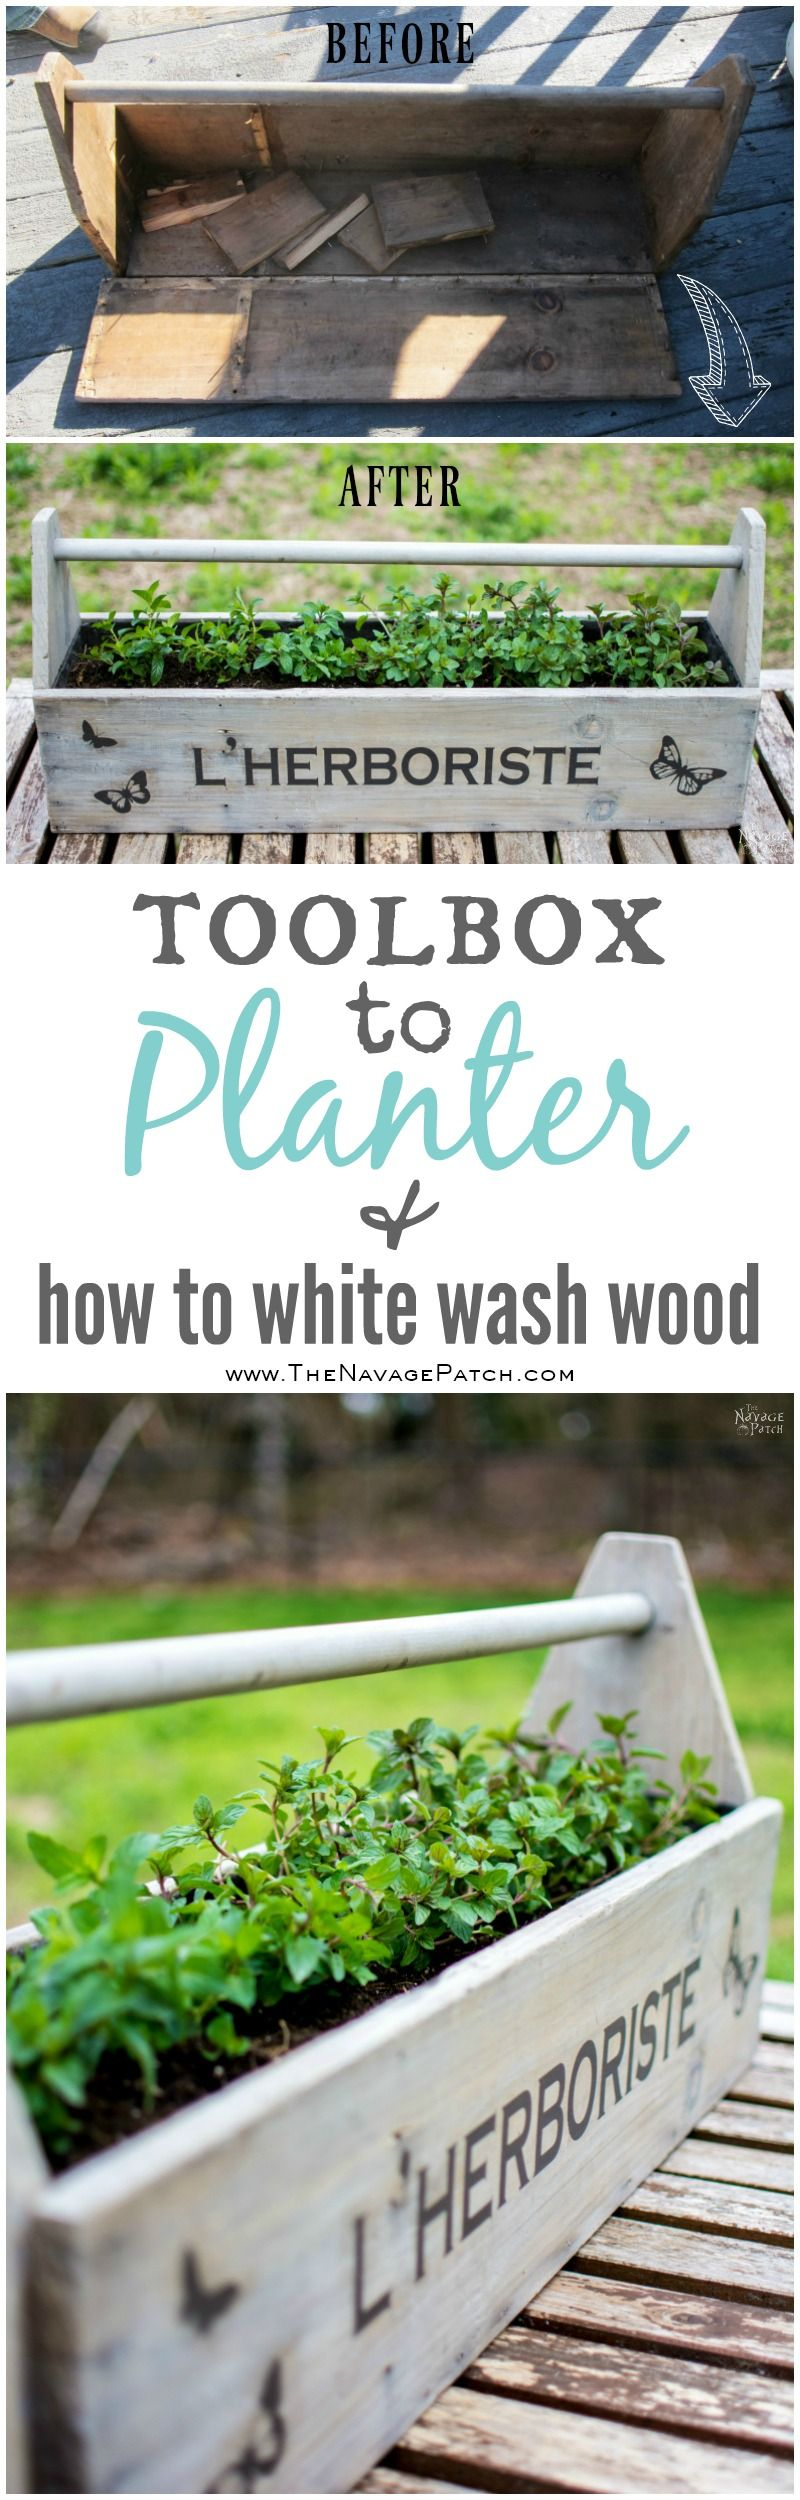 Toolbox to Planter | Upcycled toolbox | DIY wooden herb planter | How to white wash wood | How to stencil | White washing tutorial | L' Herboriste planter | TheNavagePatch.com